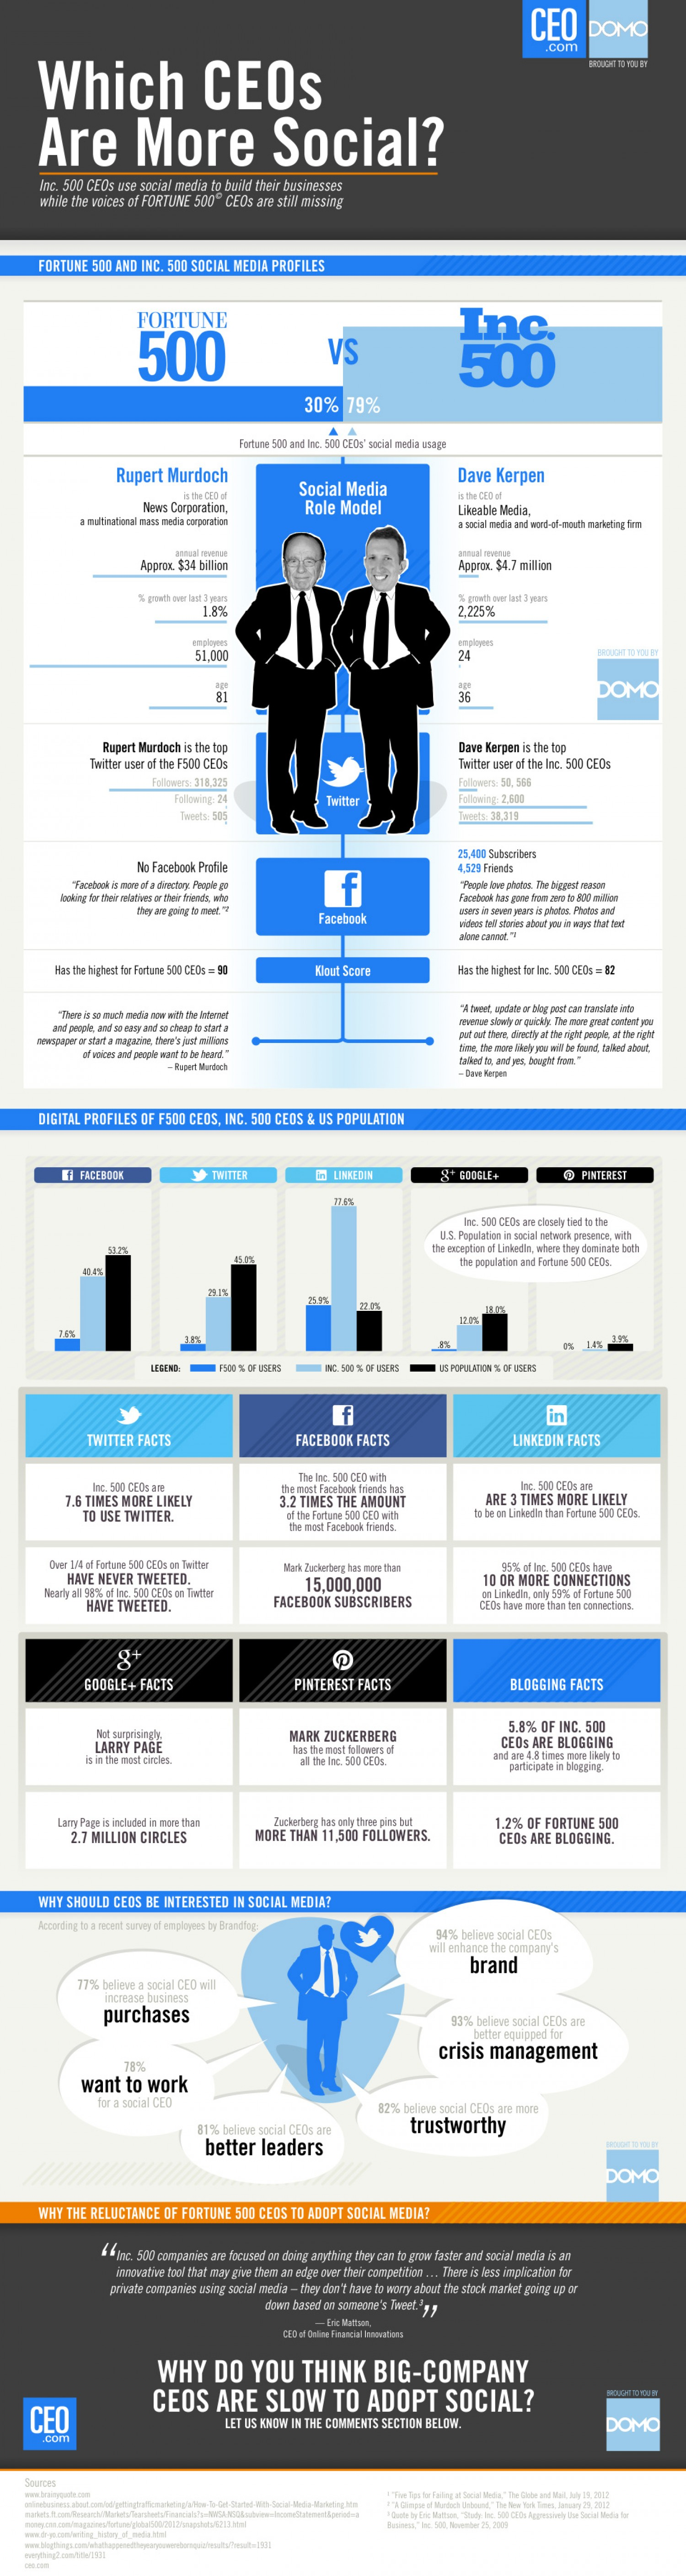 6. Which CEOs Are More Social